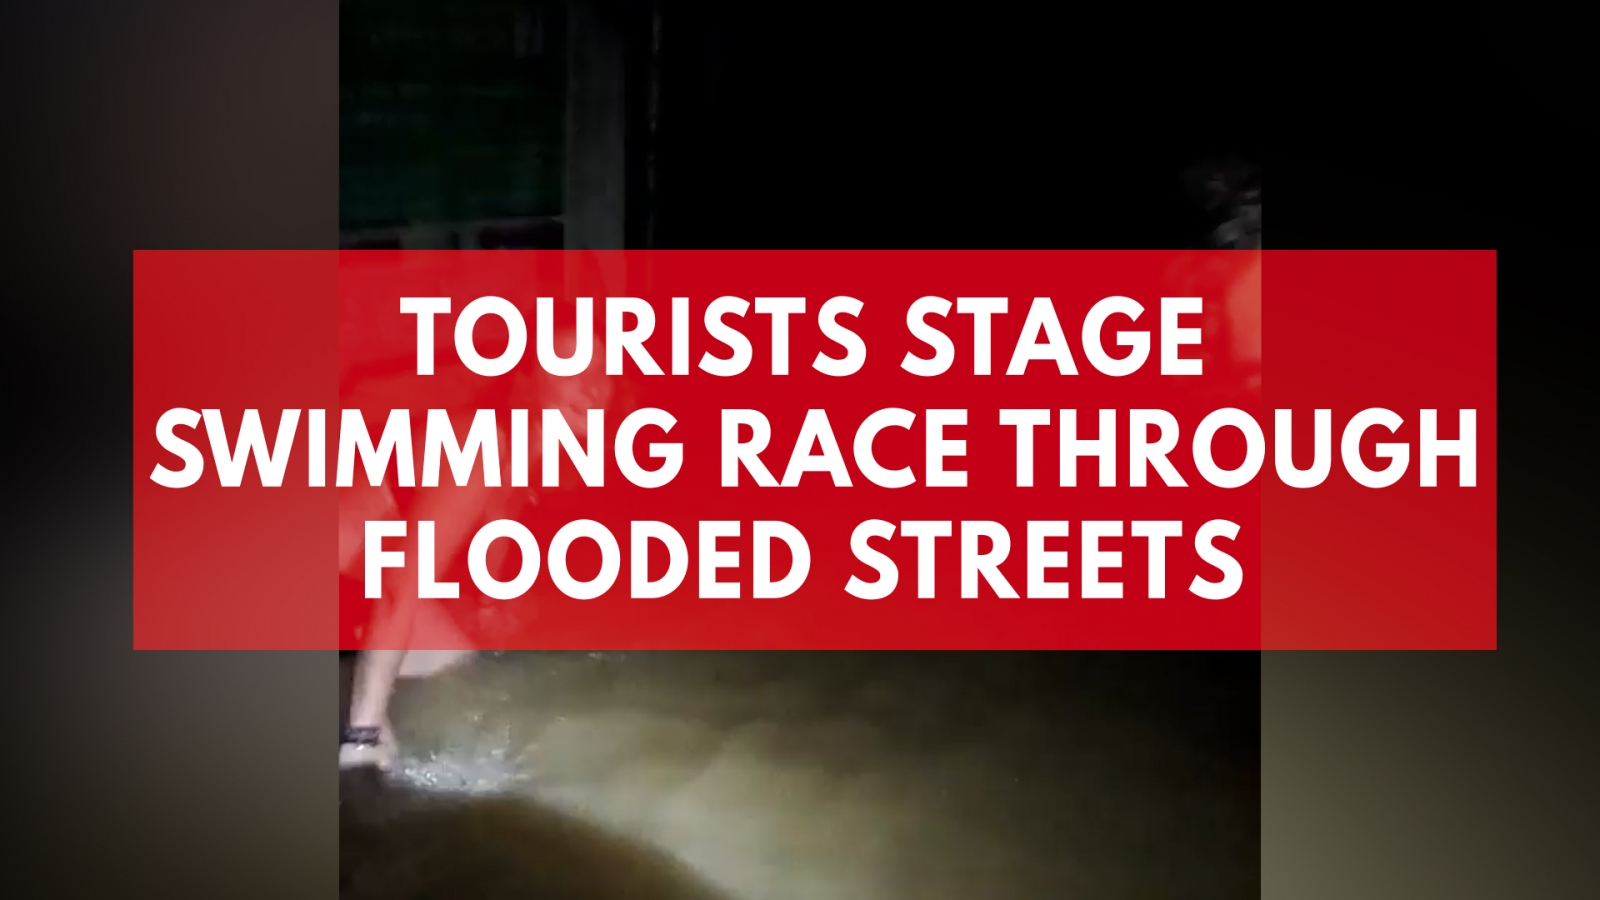 tourists-stage-swimming-race-through-flooded-street